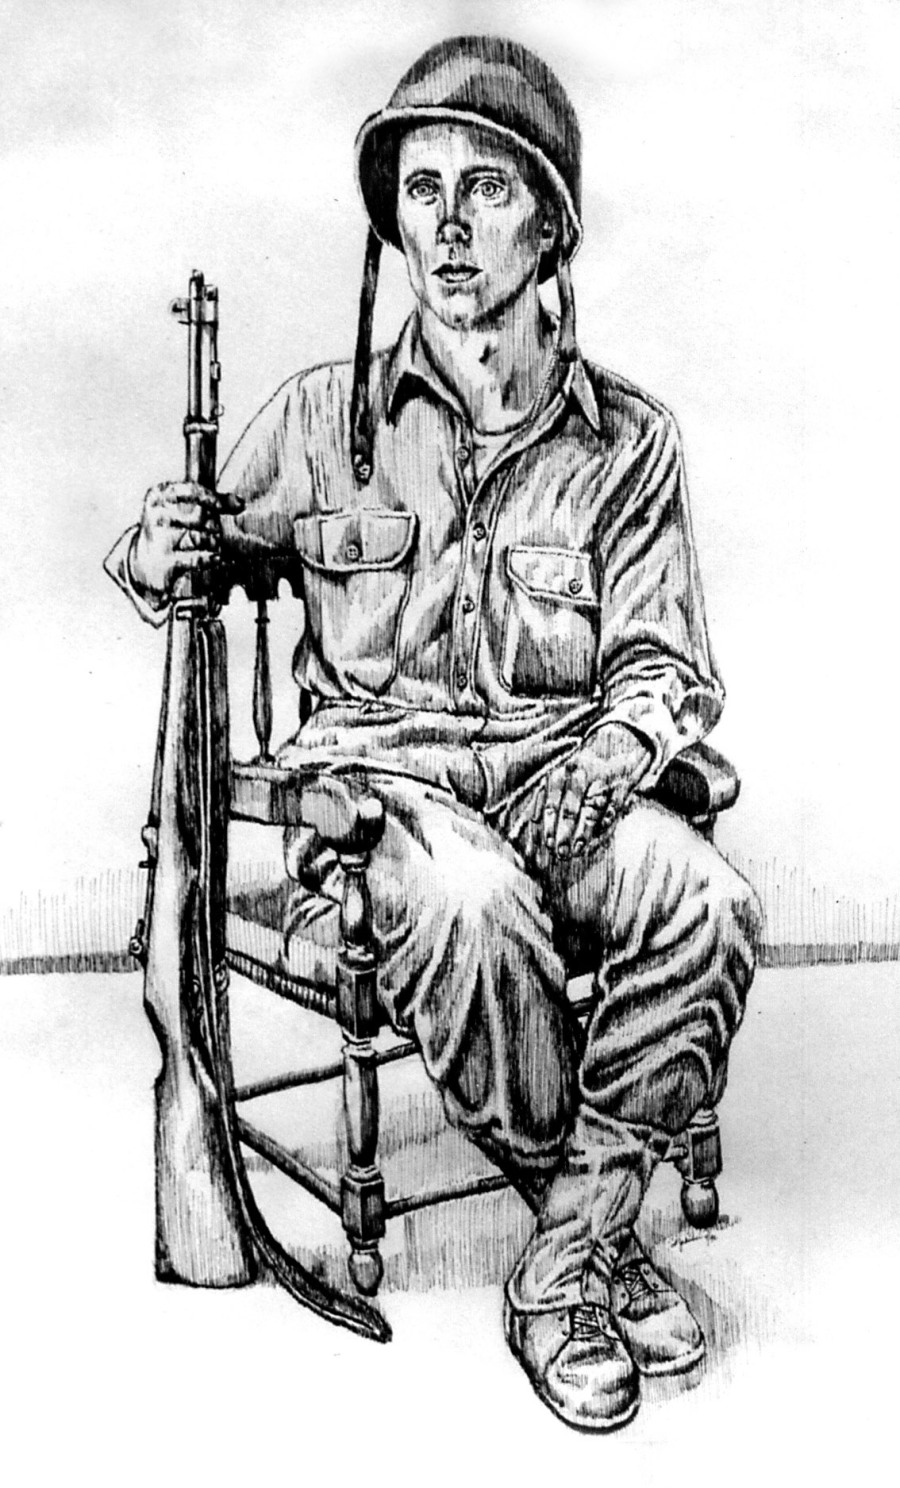 This sketch of Burns holding his M-1 rifle was drawn by Mary Jakubiec, one of his daughters, from a studio shot that appeared in a local newspaper after the war. Photo provided